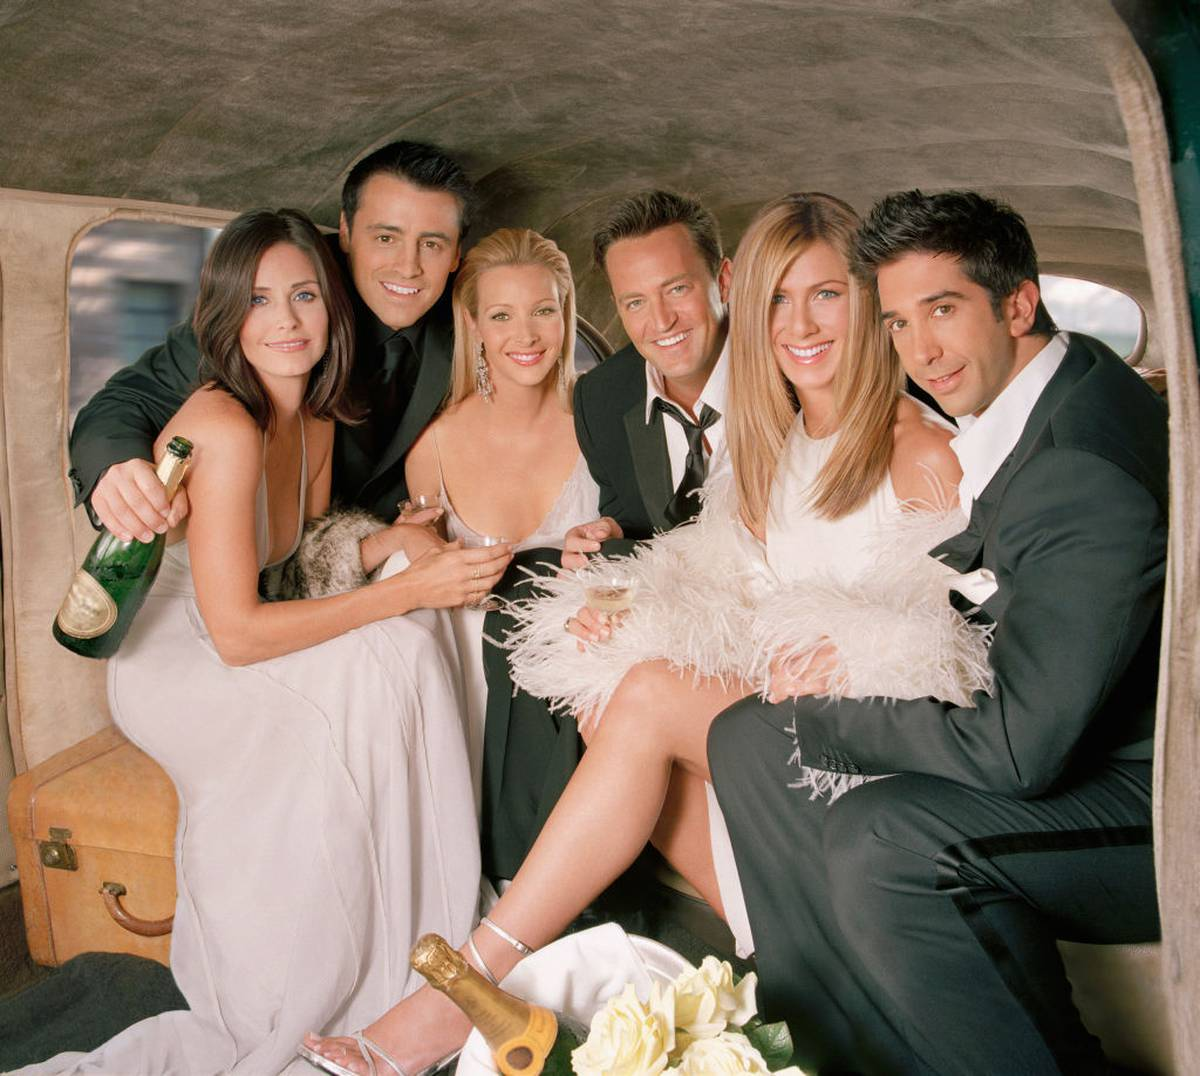 Covid 19 coronavirus: Why the cast of Friends is being tested for coronavirus